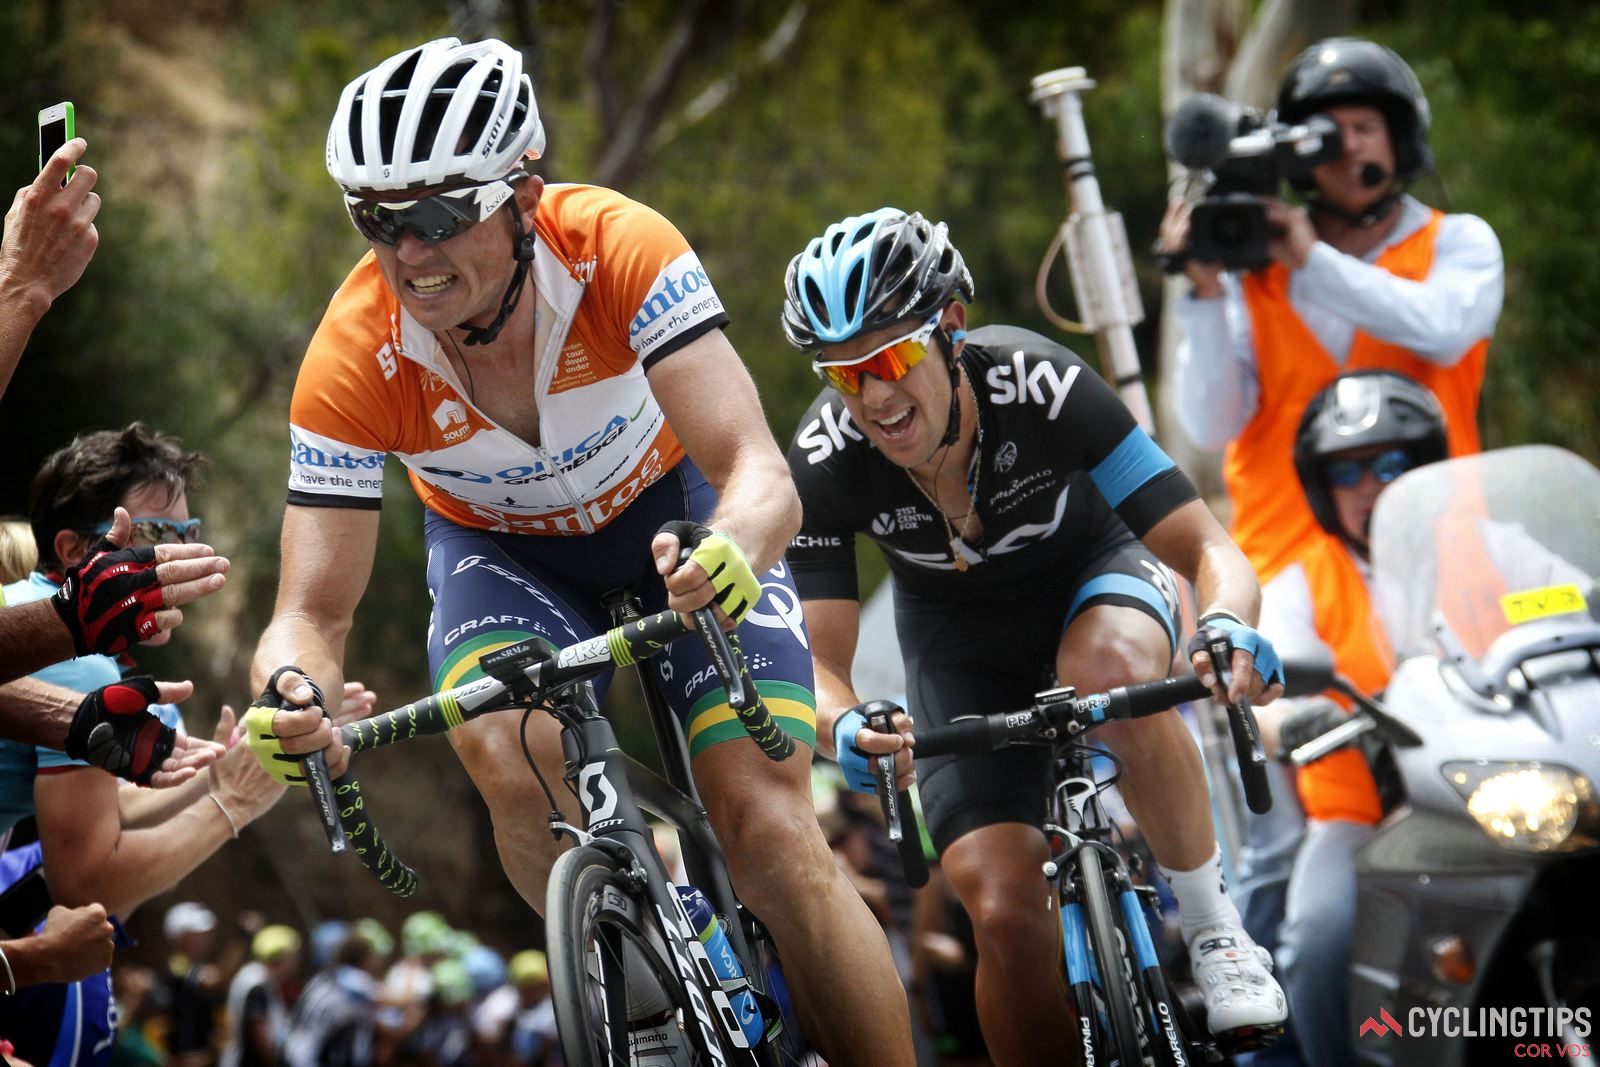 Stirling - South-Australia - wielrennen - cycling - radsport - cyclisme -  Simon Gerrans (Australia / Orica Greenedge Cycling Team) - Richie Porte (Australia / Team Sky)   pictured during  Santos Tour Down Under stage-3 from  Norwood  to Campbelltown on jan 23 2014 - photo Wessel van Keuk/Cor Vos © 2014